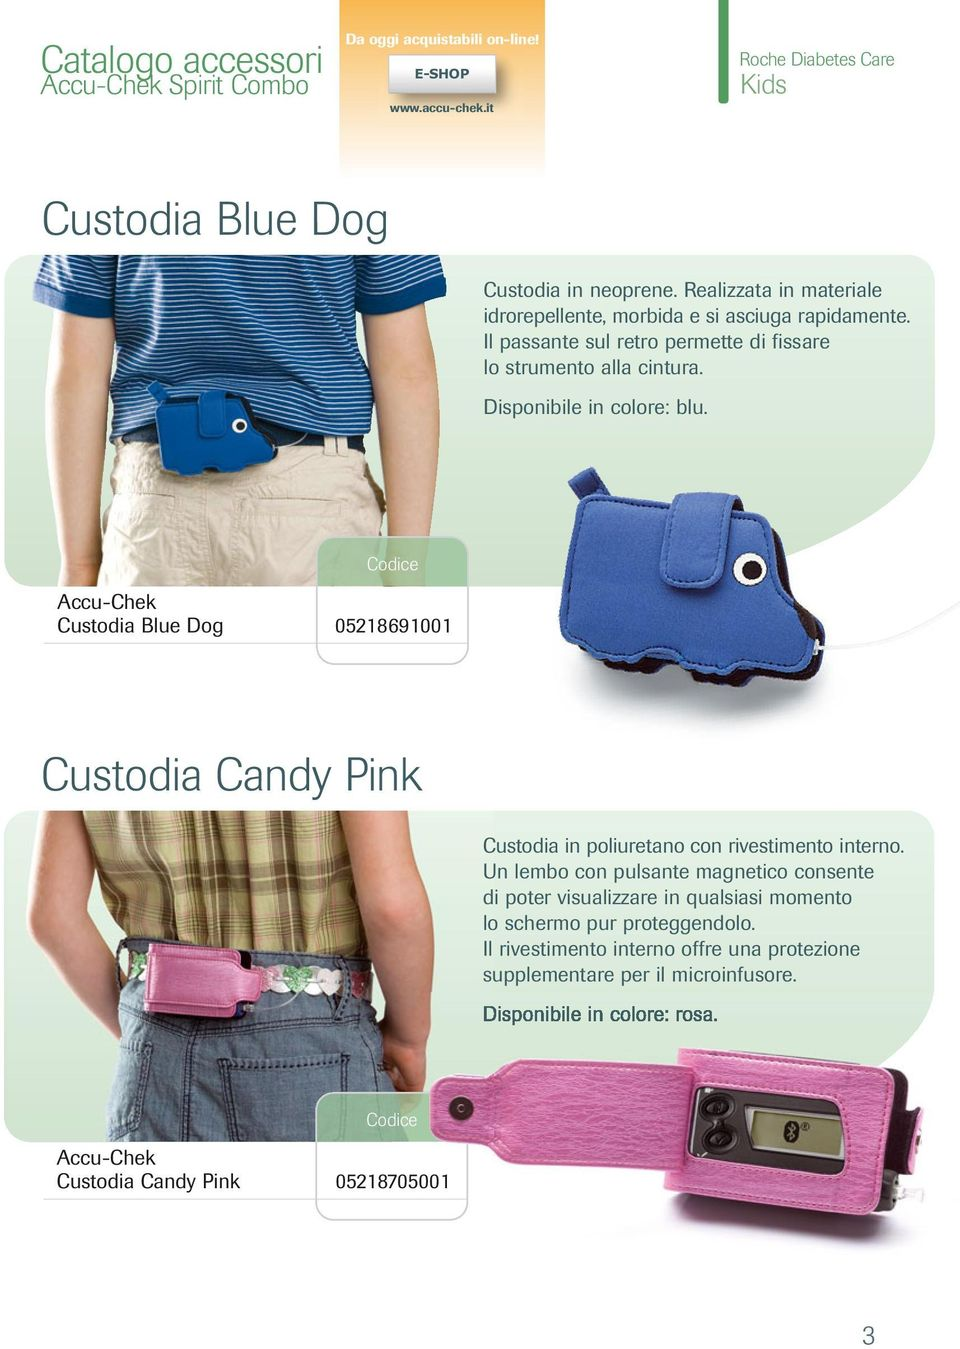 Accu-Chek Custodia Blue Dog 05218691001 Custodia Candy Pink Custodia in poliuretano con rivestimento interno.